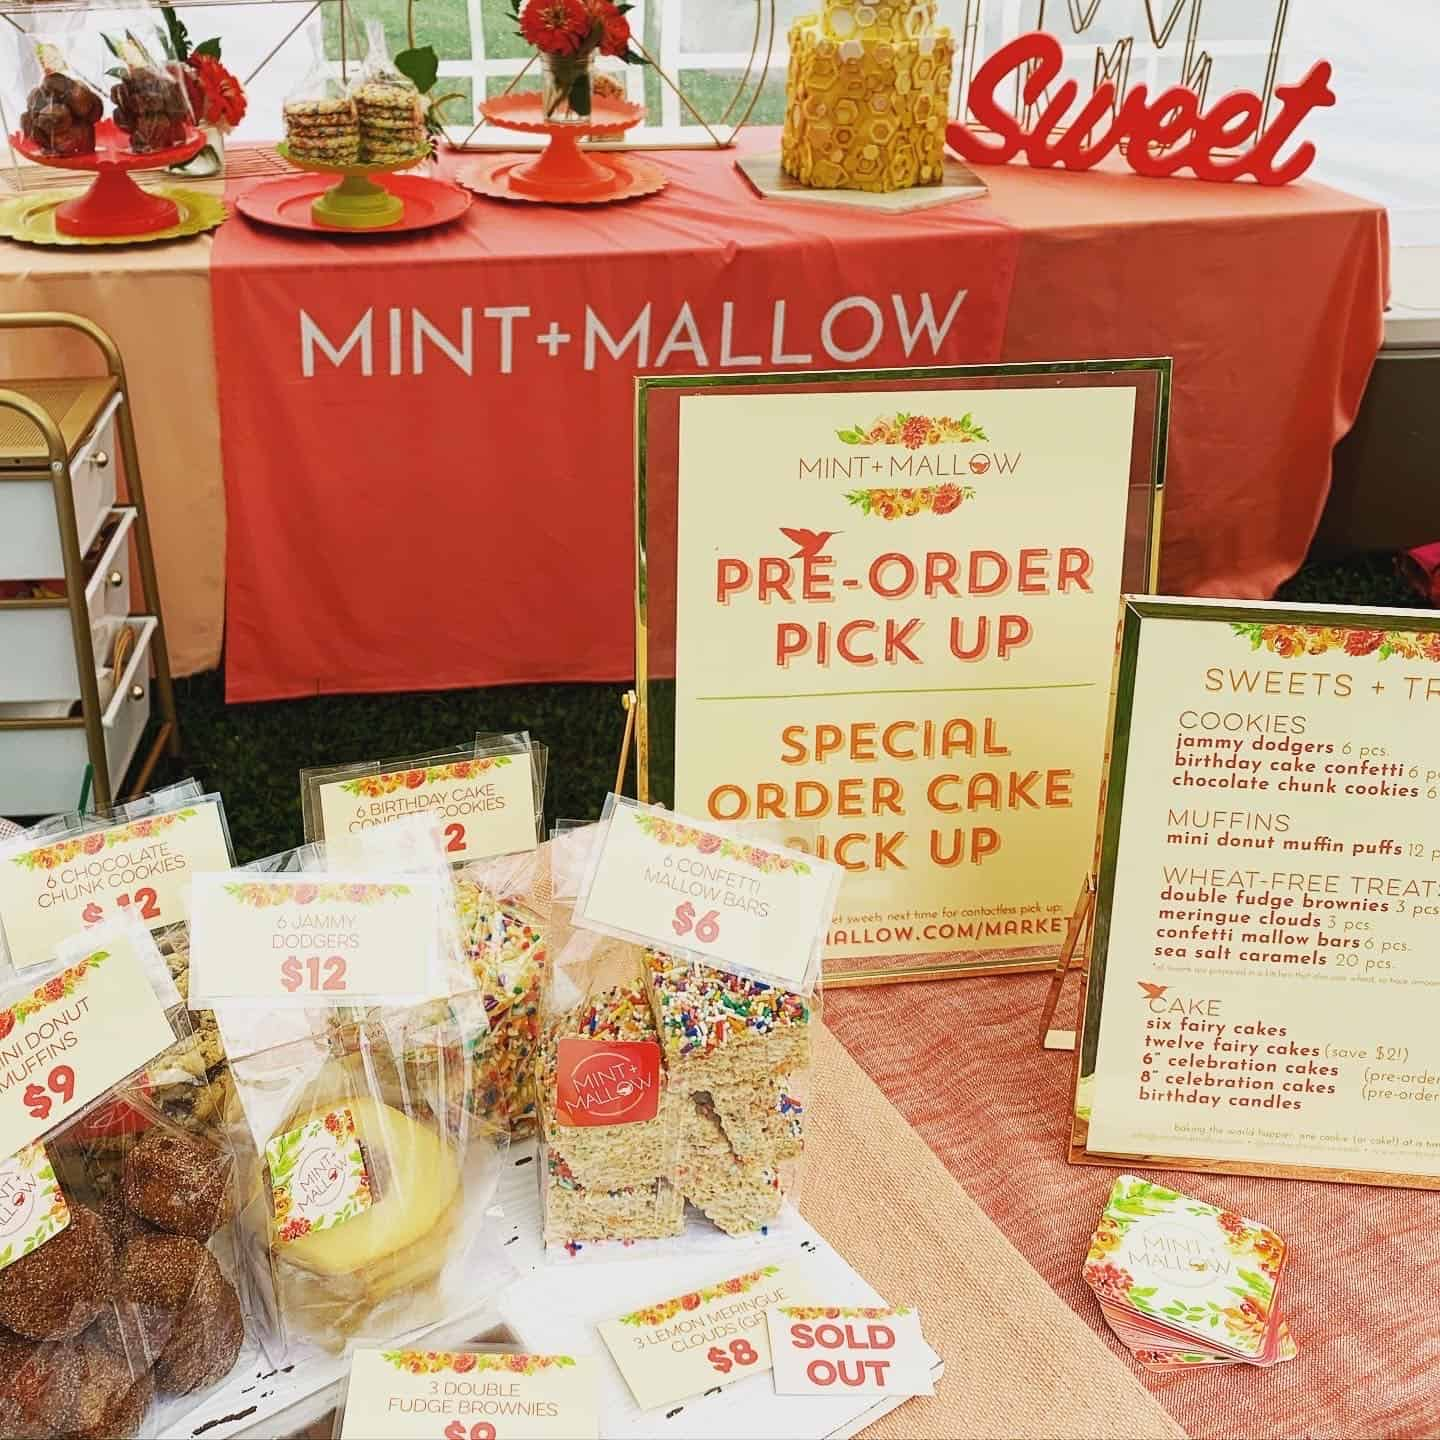 market menu and ordering signs with bags of cookies, muffins and bars